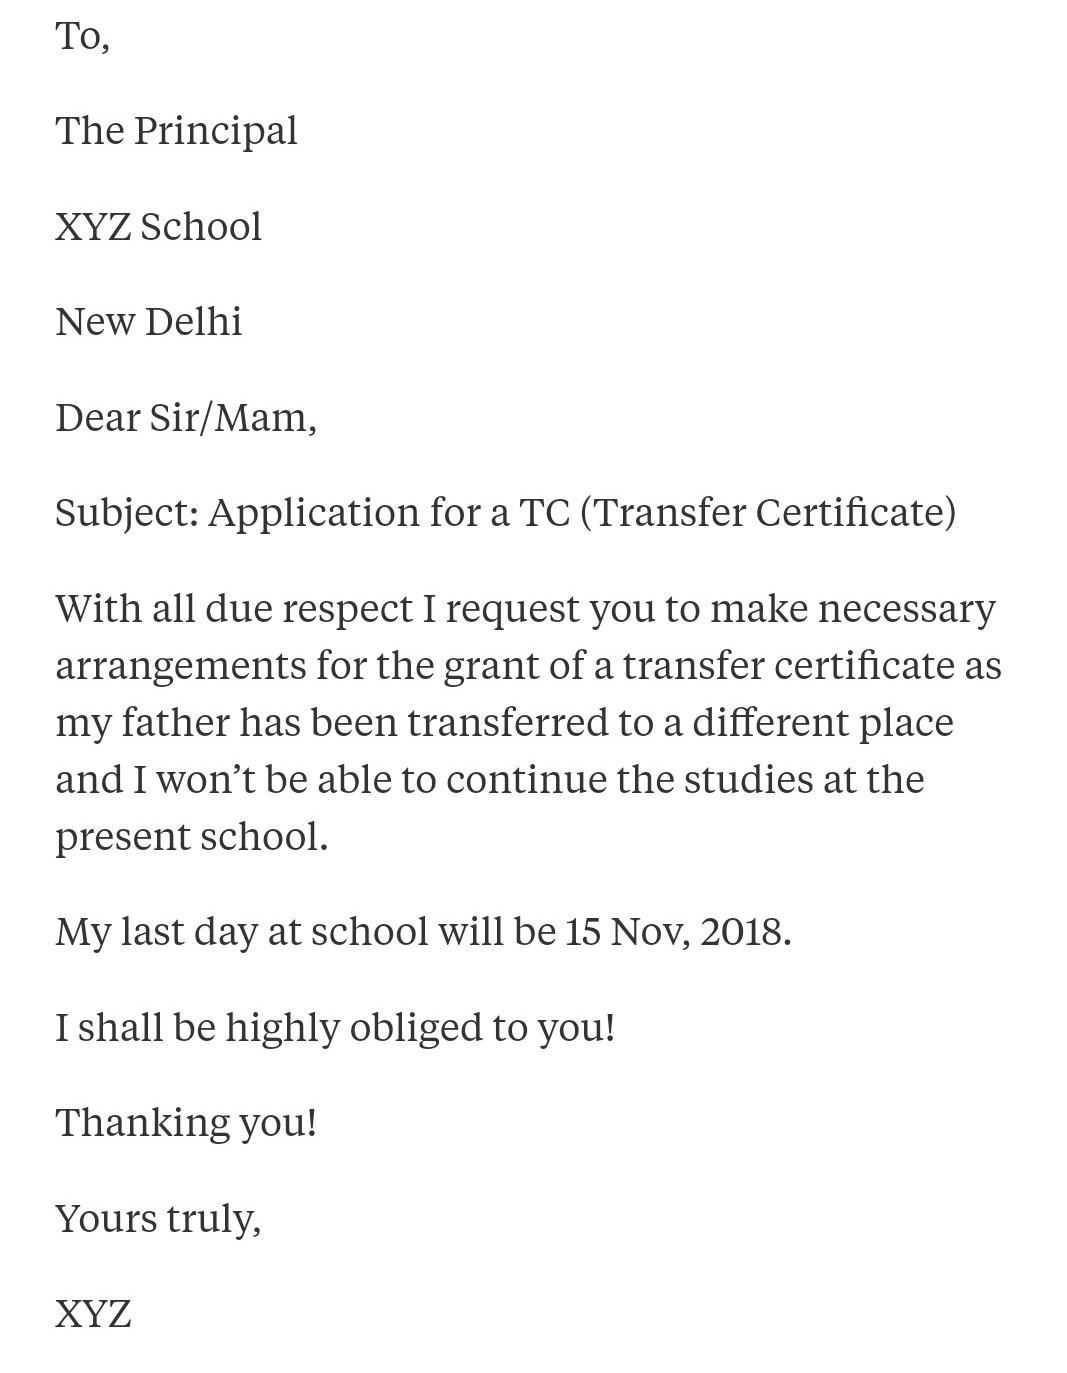 Write A Letter To Get Tc From School